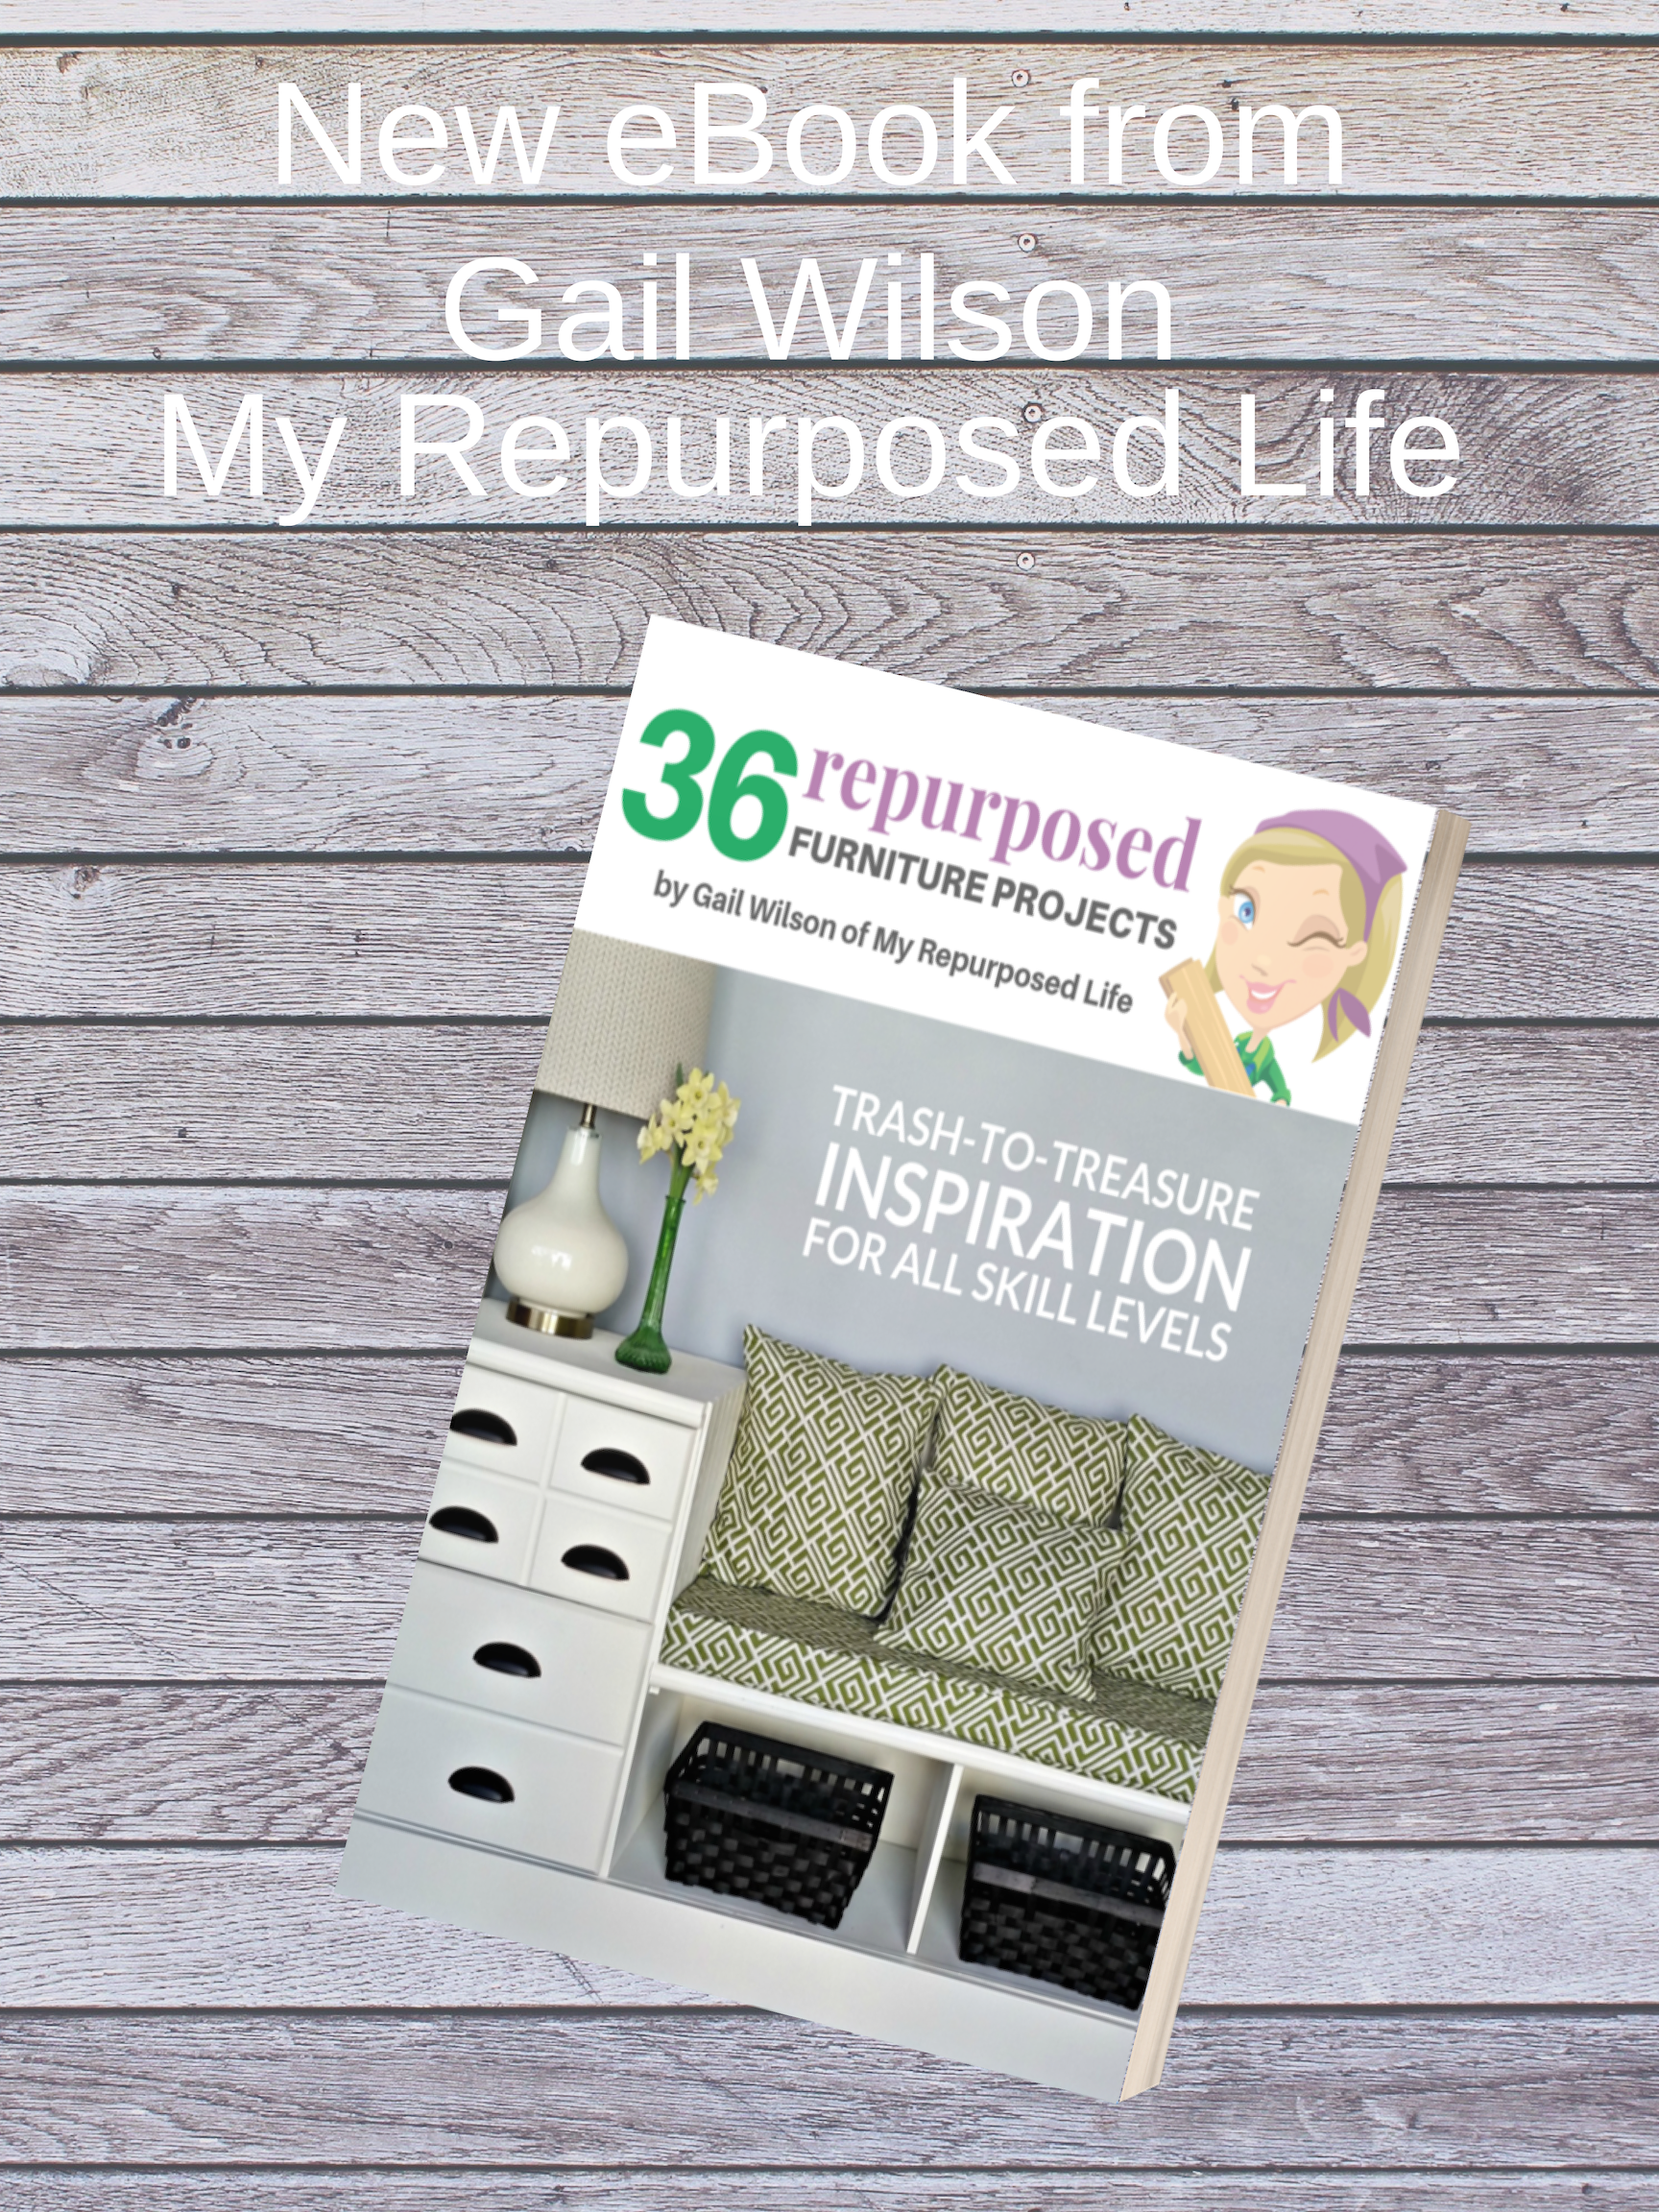 new eBook from Gail Wilson of My Repurposed Life. 36 Repurposed Furniture Projects for All Skill Levels read what people are saying about this new book #MyRepurposedLife #repurposedfurniture #ebooks #diy